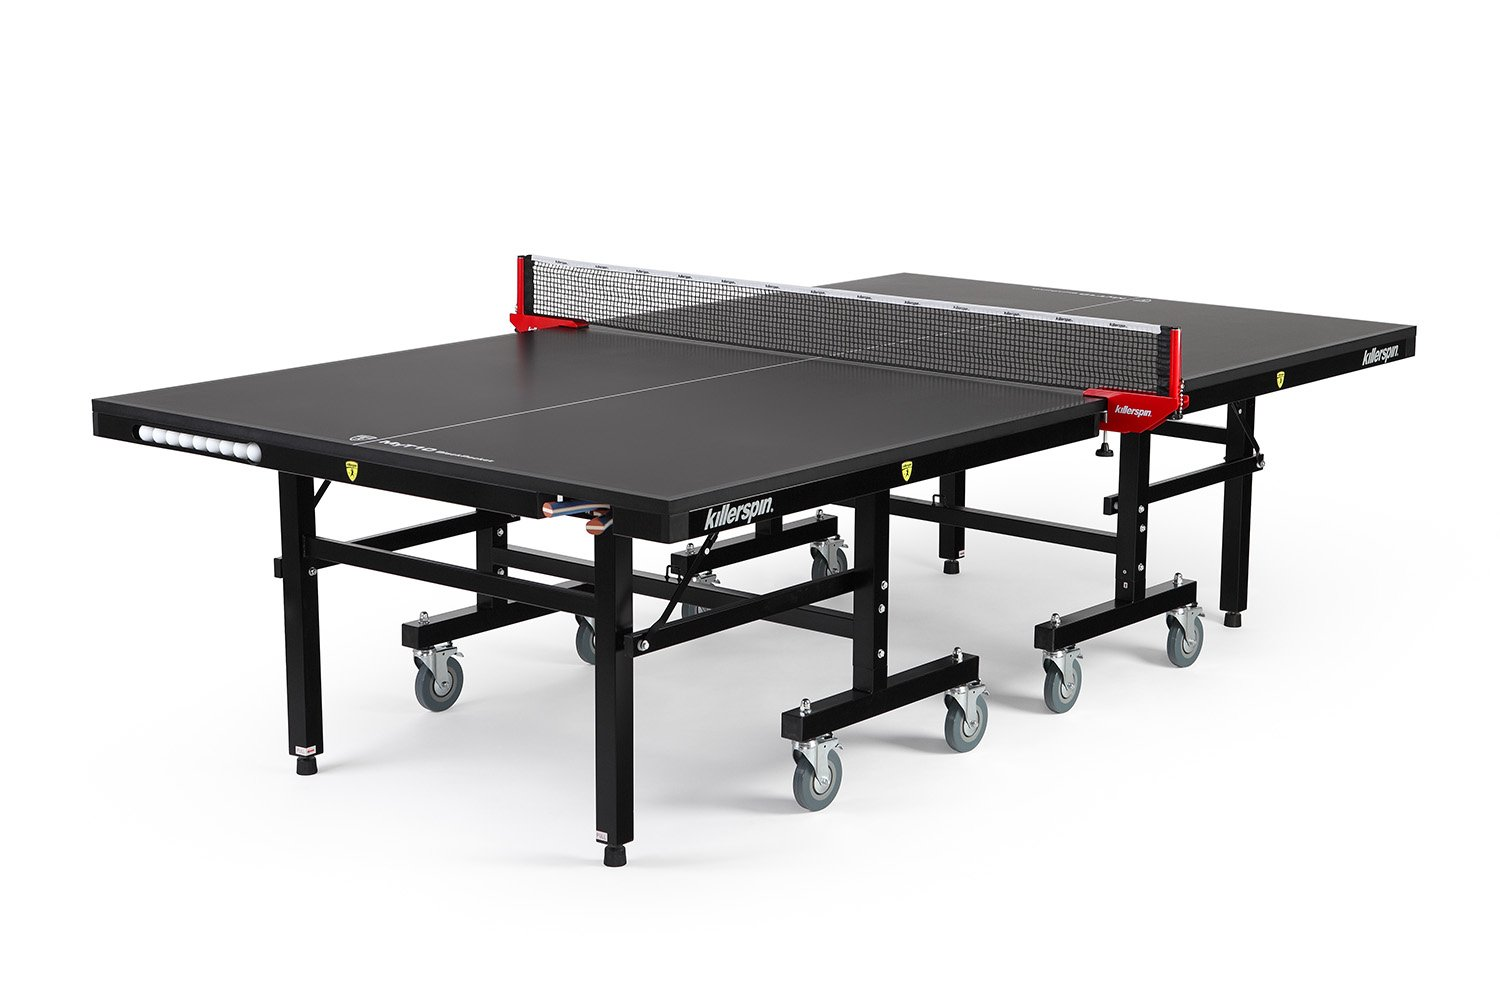 Killerpin MyT10 BlackPocket Table Tennis Table - Best Folding Table Tennis Table with Amazing Pocket Addition by Killerspin